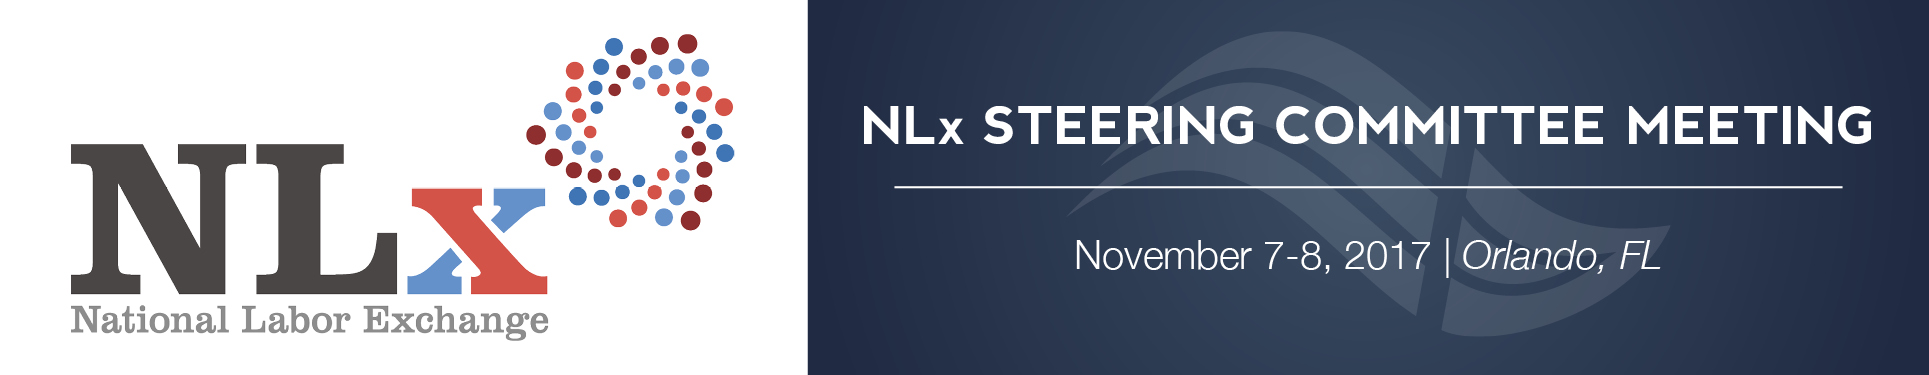 NLx Steering Committee Meeting (Nov. 2017)